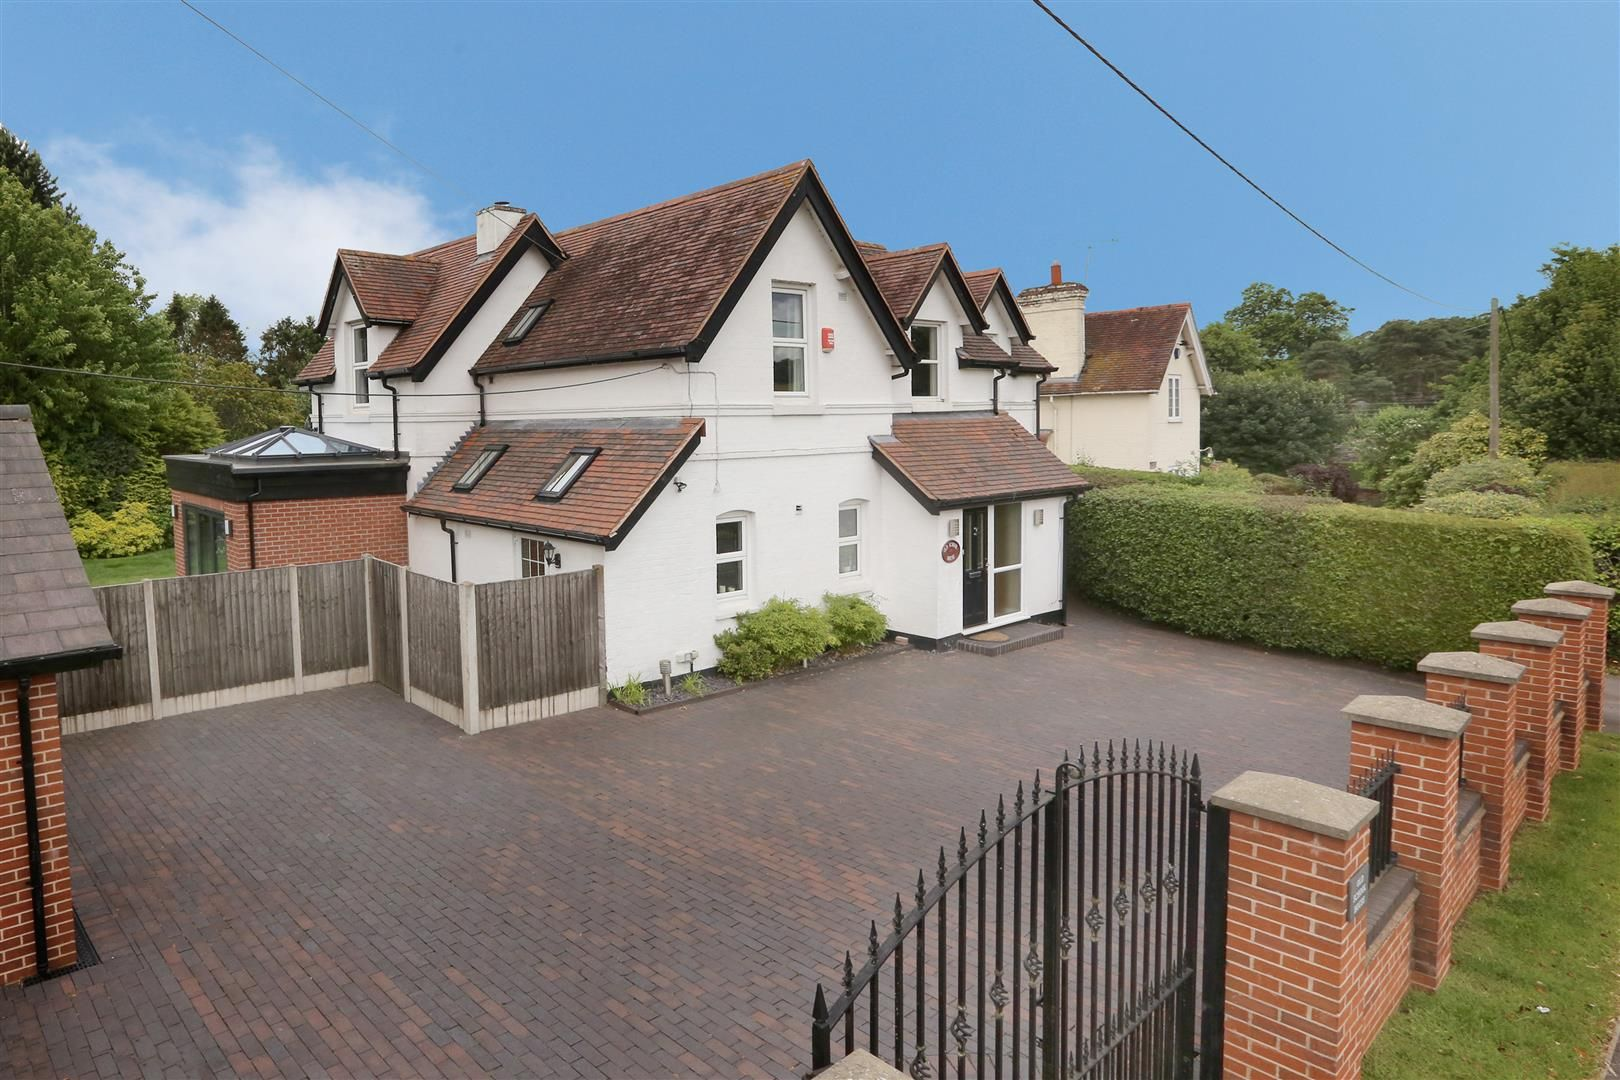 4 bed house for sale in Churchill - Property Image 1